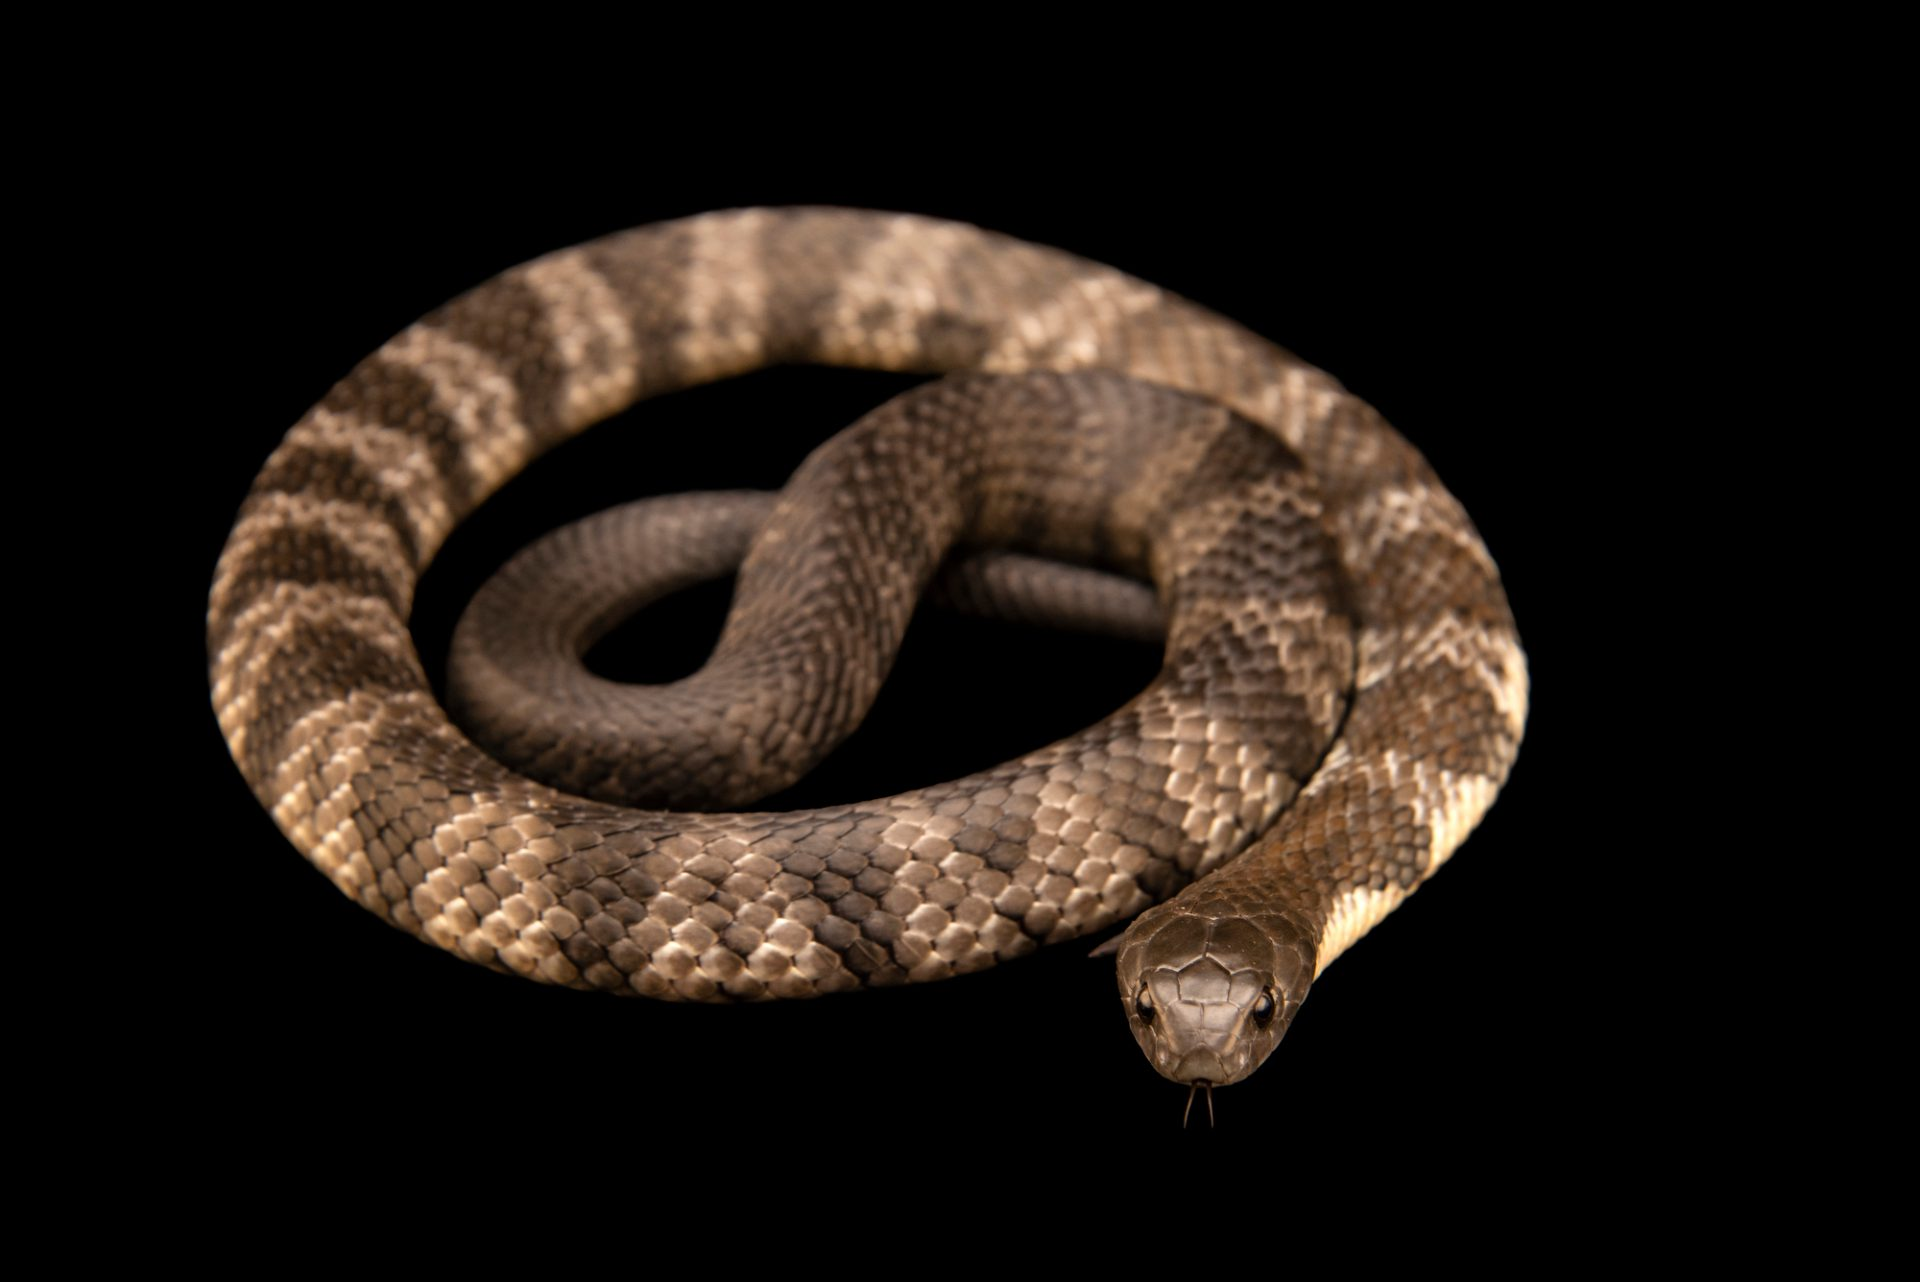 Eastern tiger snake (Notechis scutatus scutatus) from a private collection.